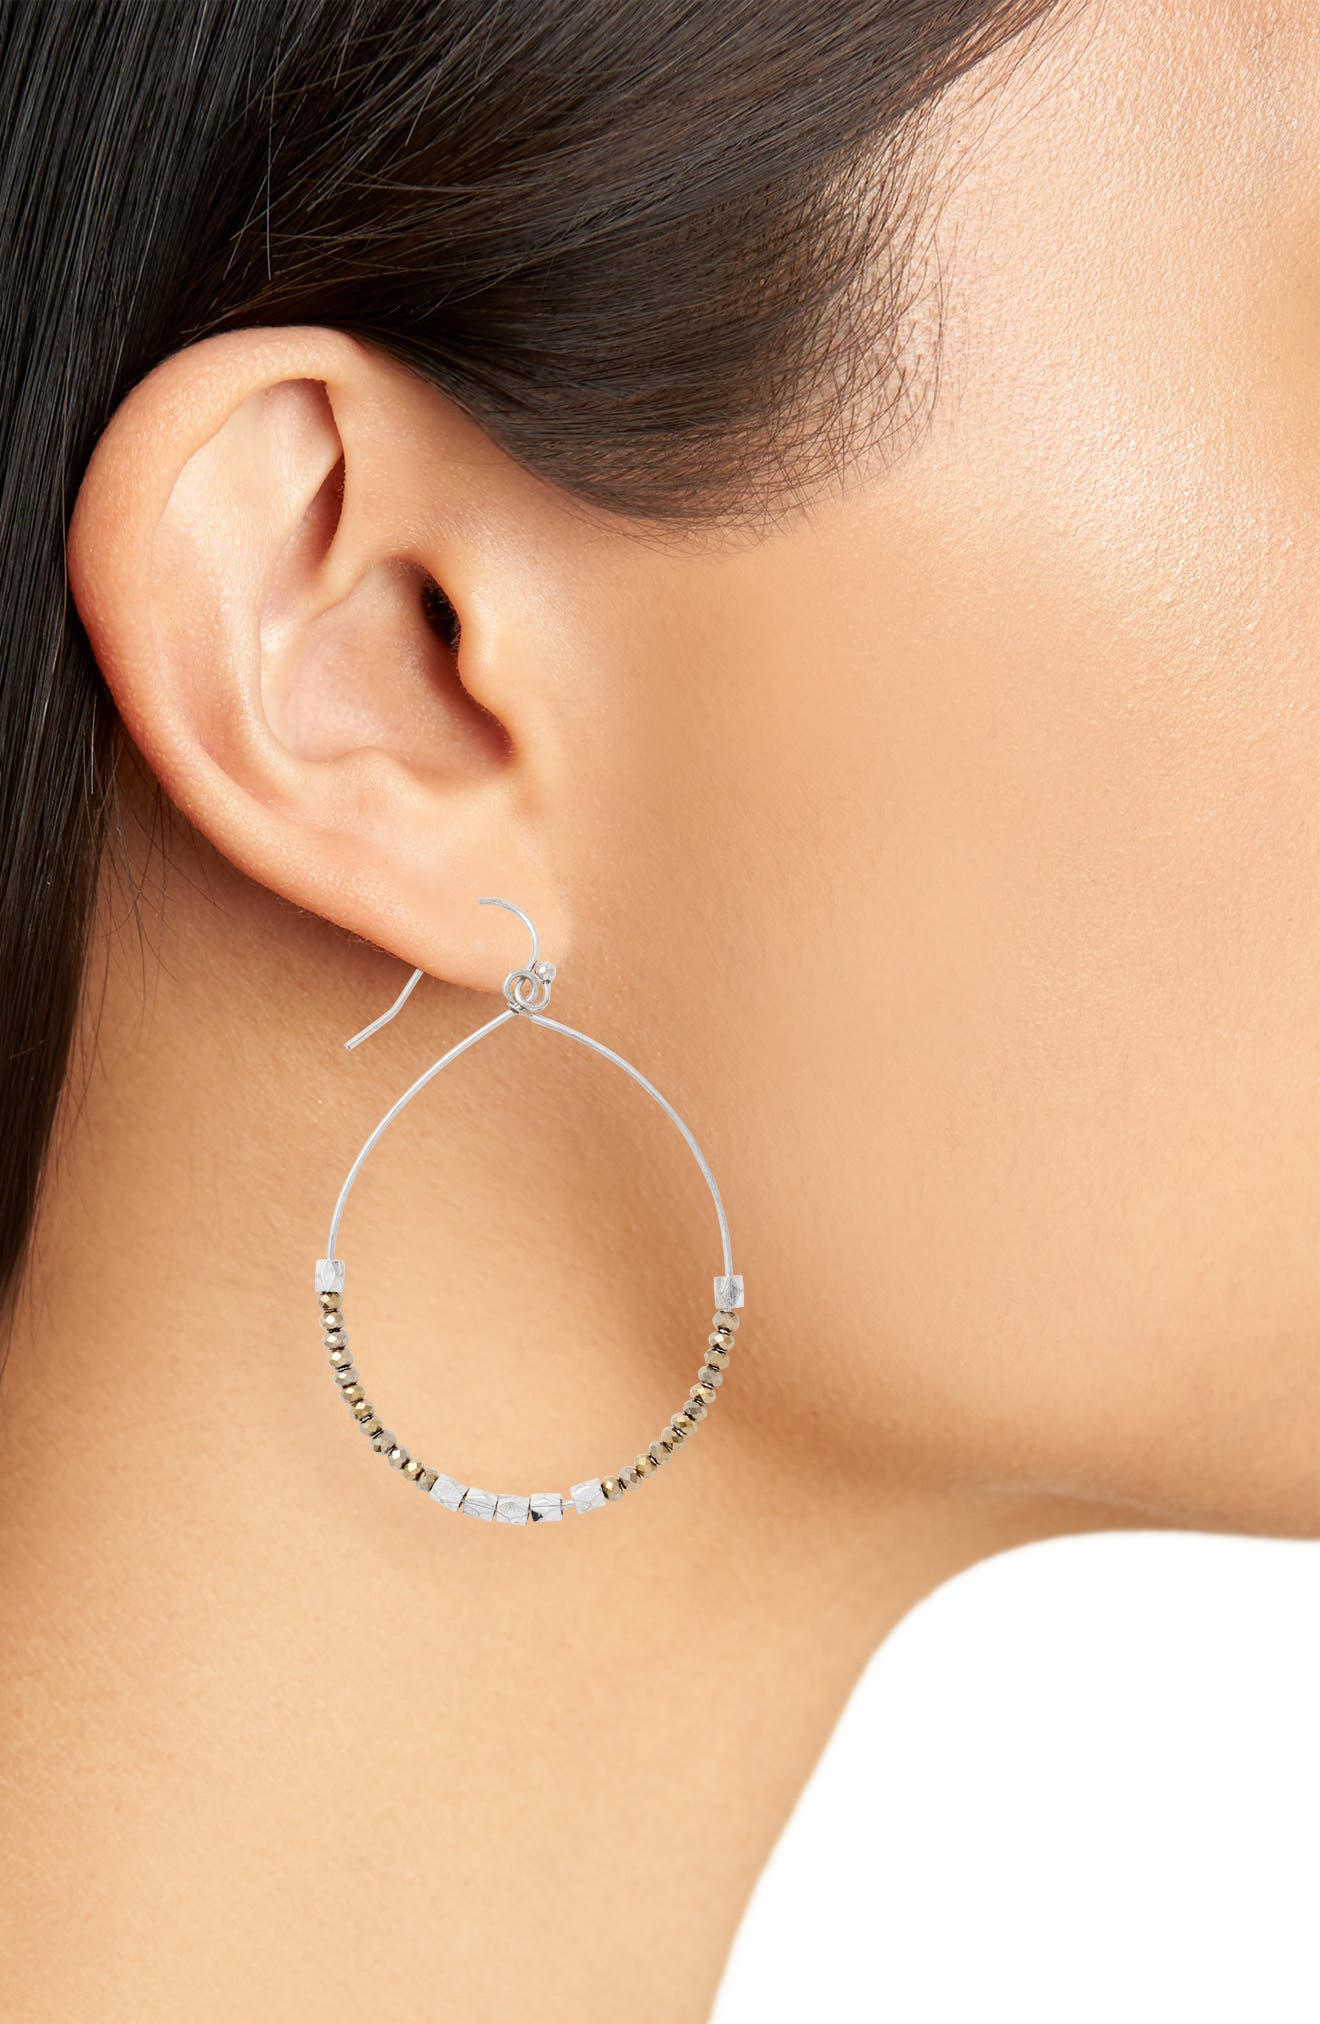 Fine Beaded Wire Hoops,                             Alternate thumbnail 2, color,                             041